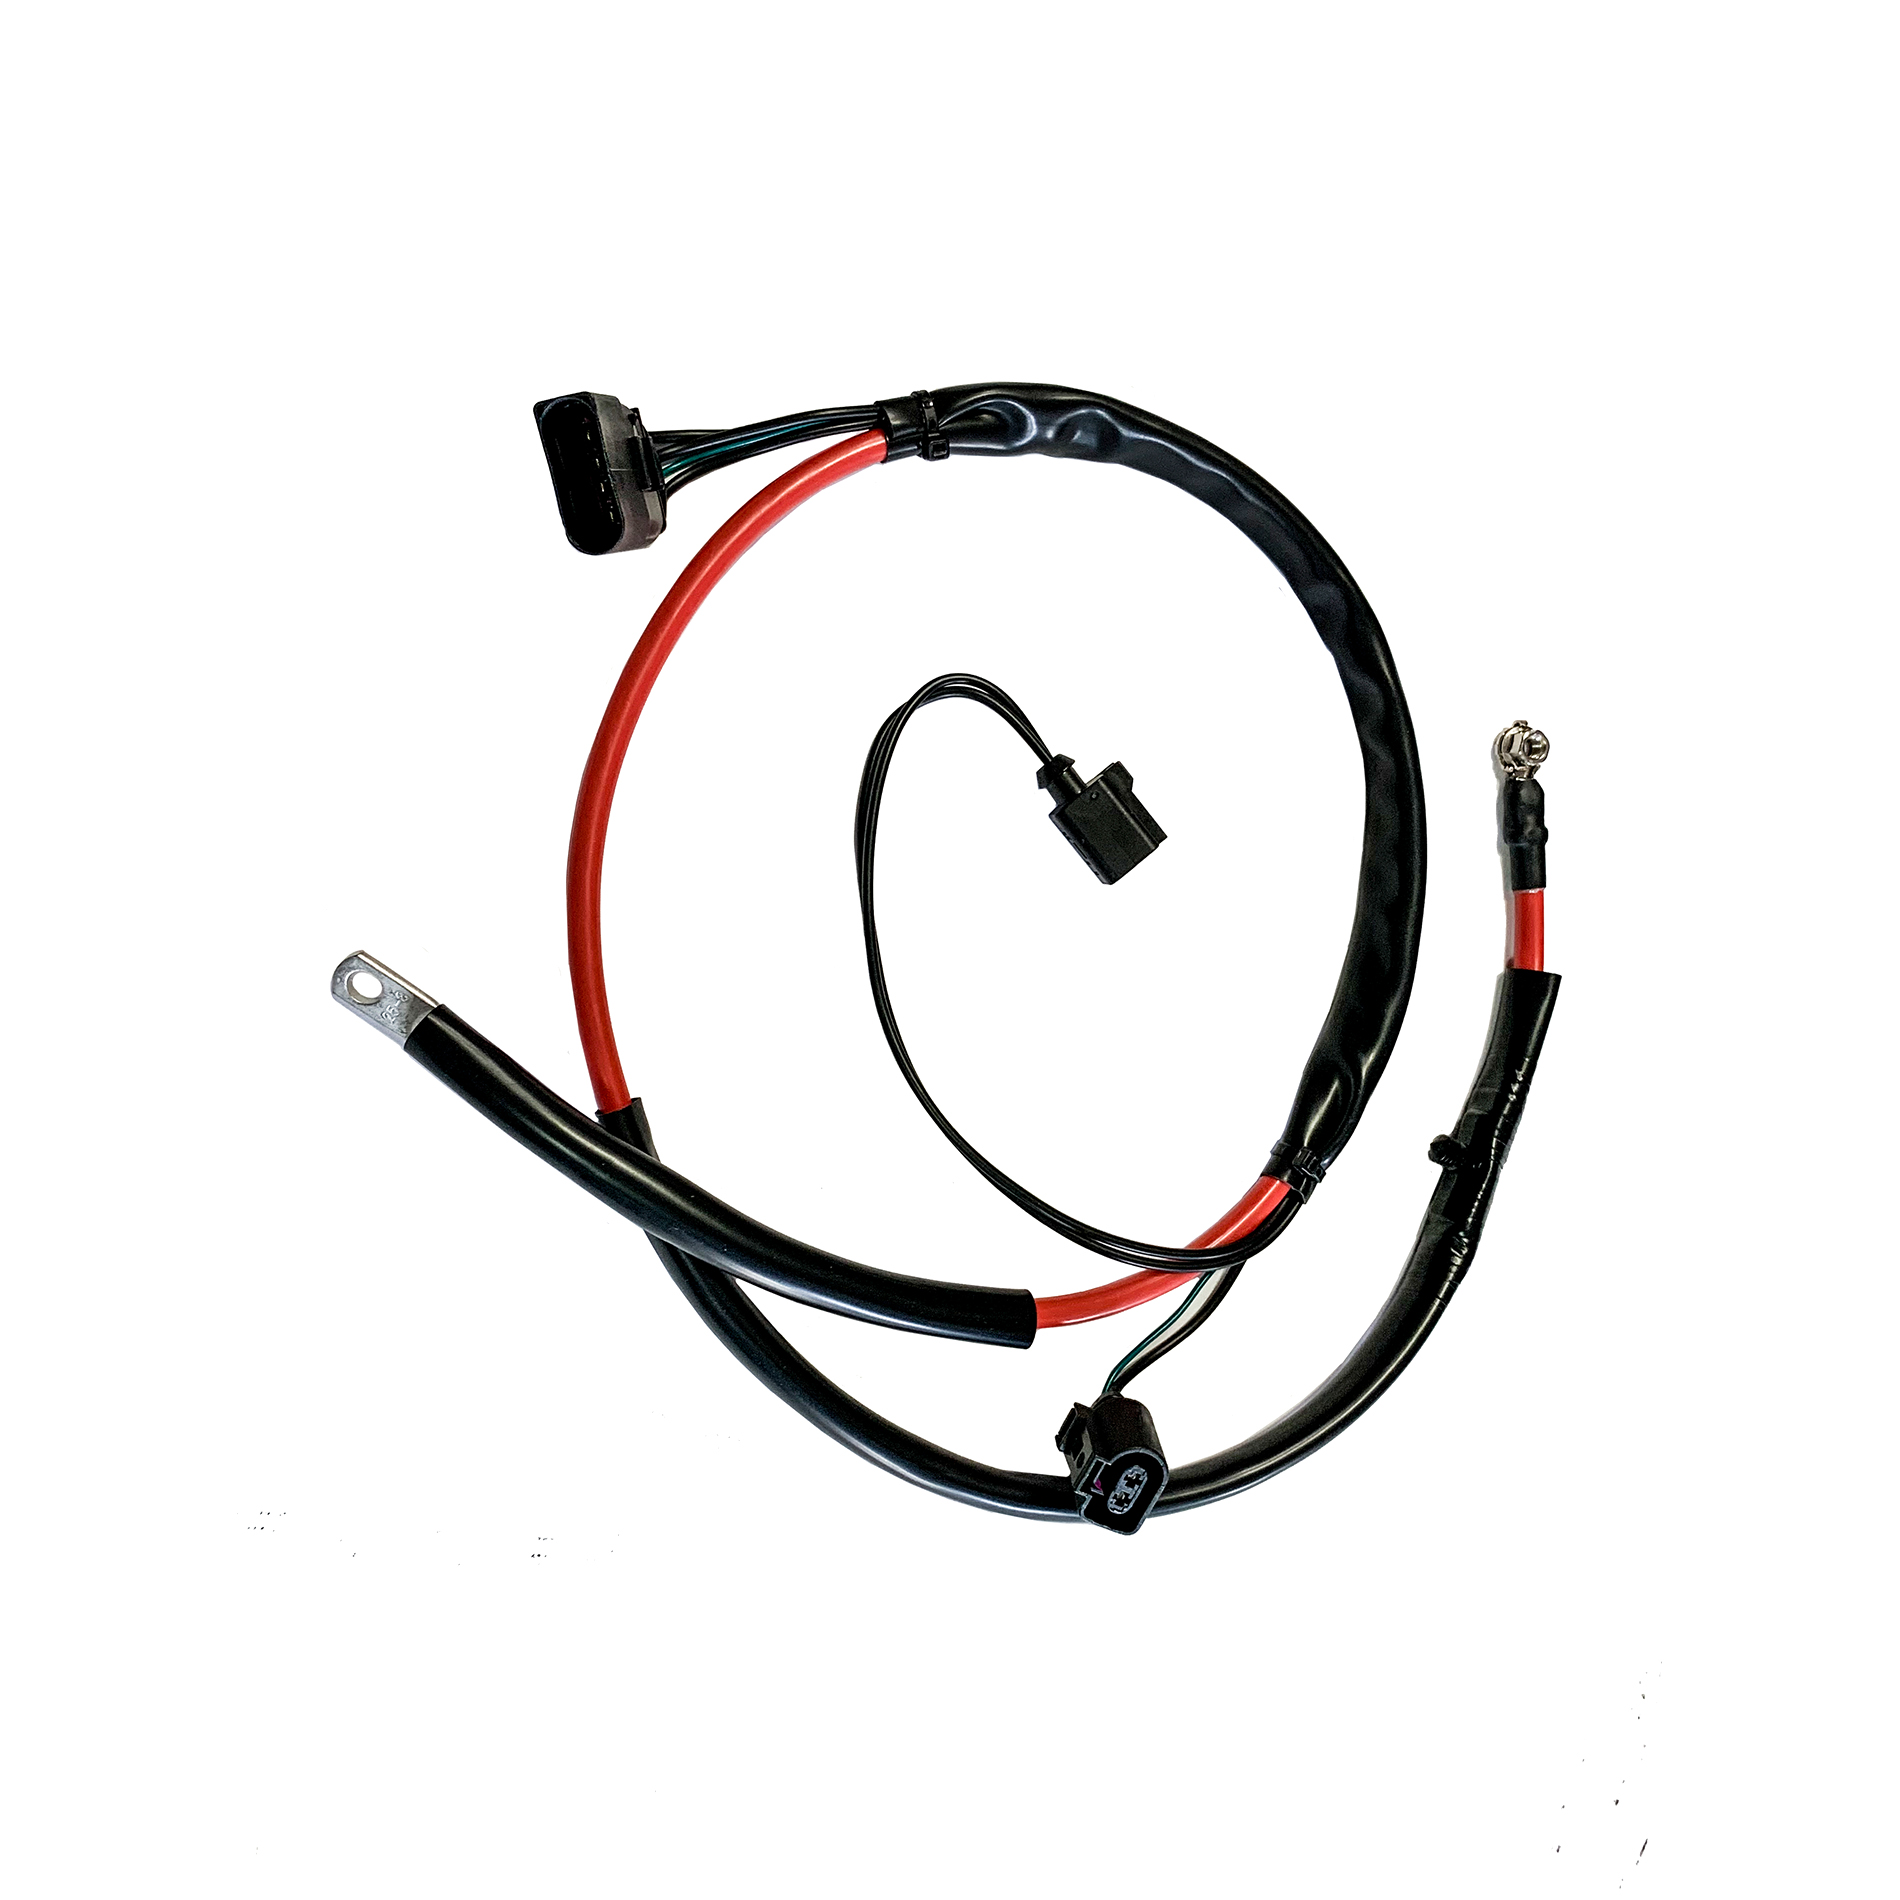 Alternator Wiring Harness Red For Vw Beetle Gl Turbo